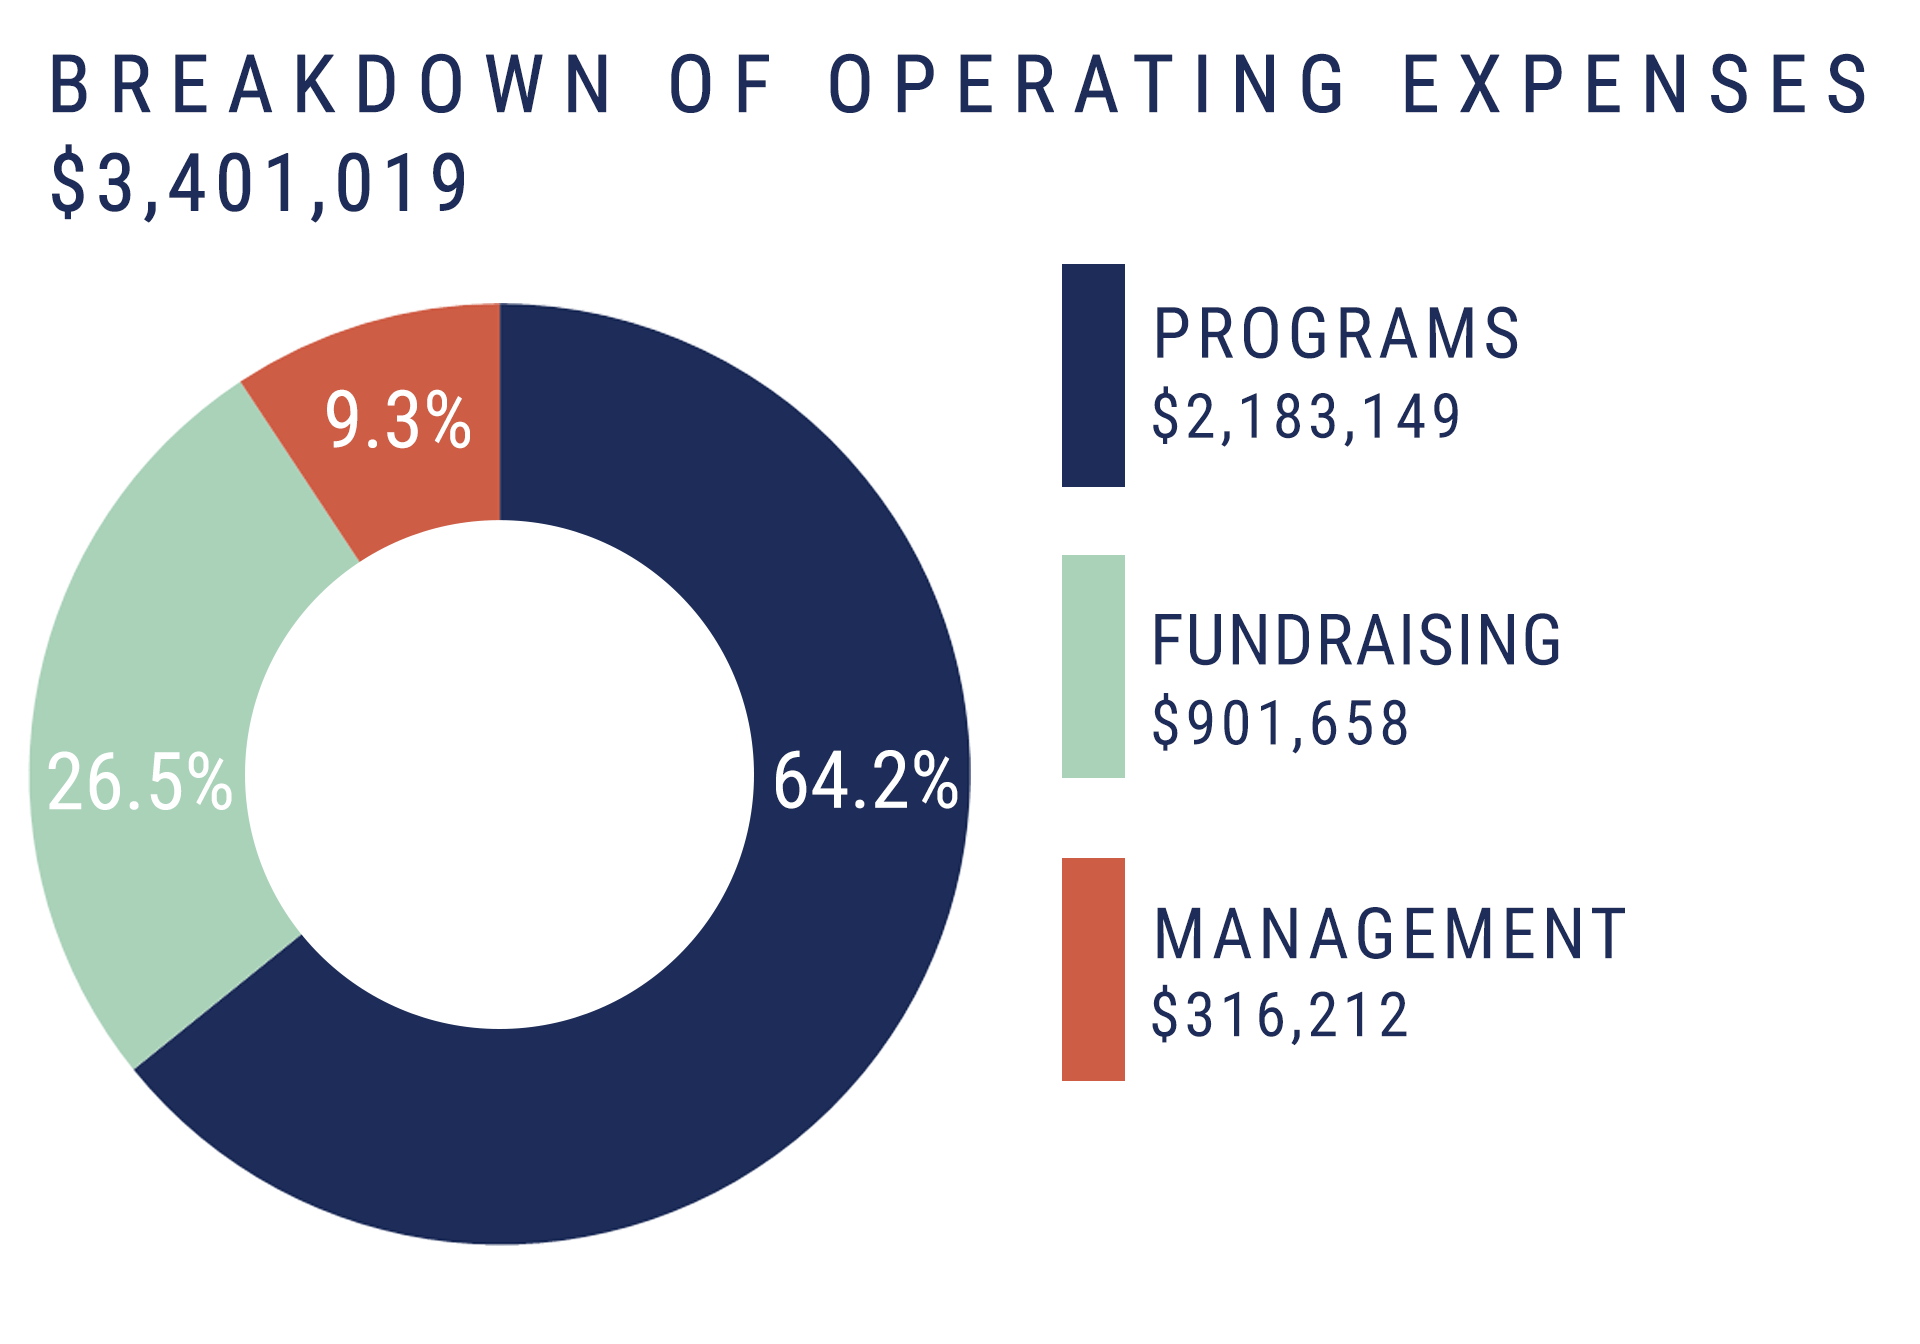 pie-chart_breakdown-of-operating-expenses2018